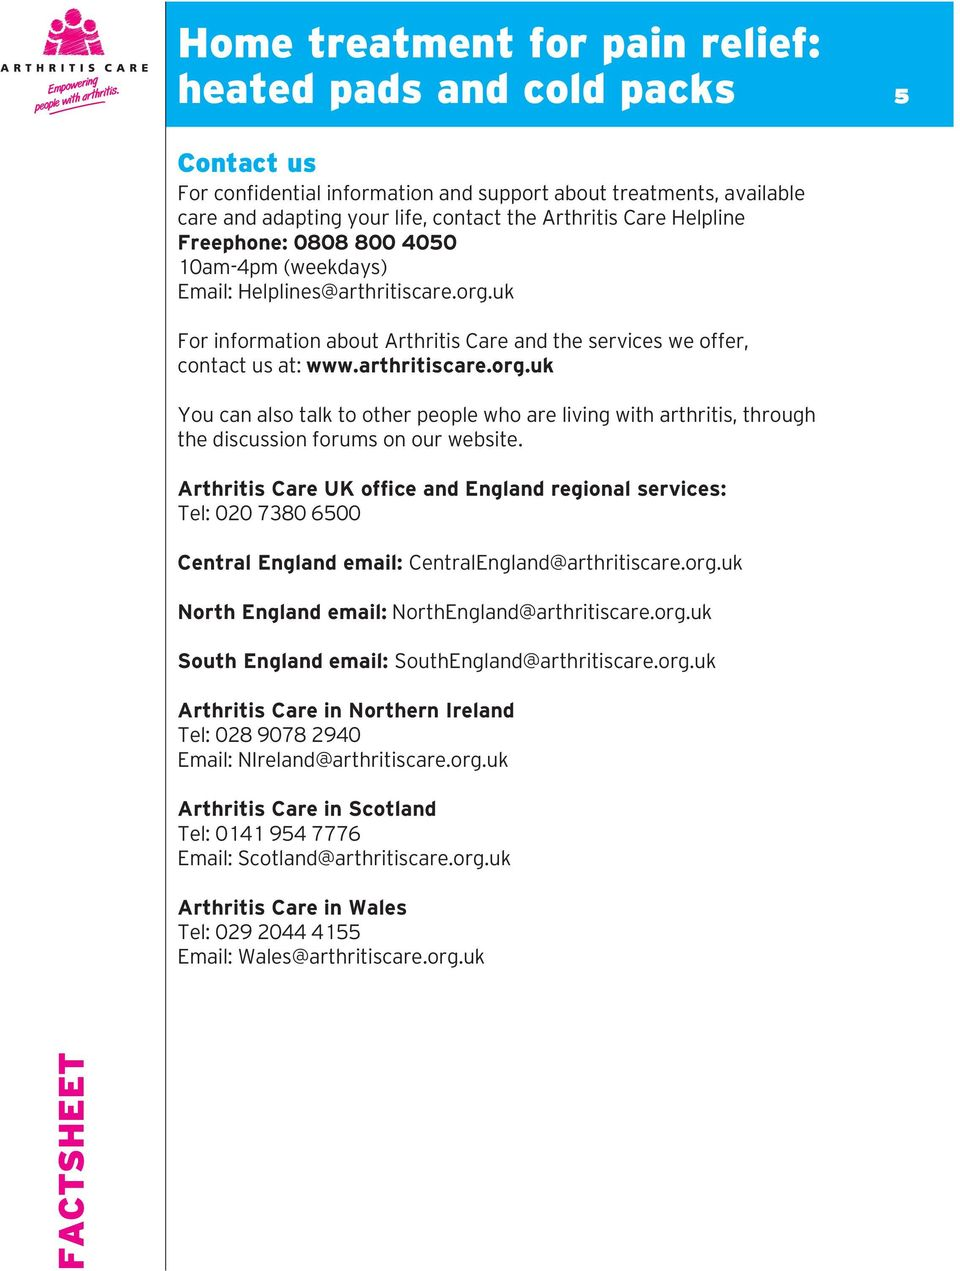 Arthritis Care UK office and England regional services: Tel: 020 7380 6500 Central England email: CentralEngland@arthritiscare.org.uk North England email: NorthEngland@arthritiscare.org.uk South England email: SouthEngland@arthritiscare.